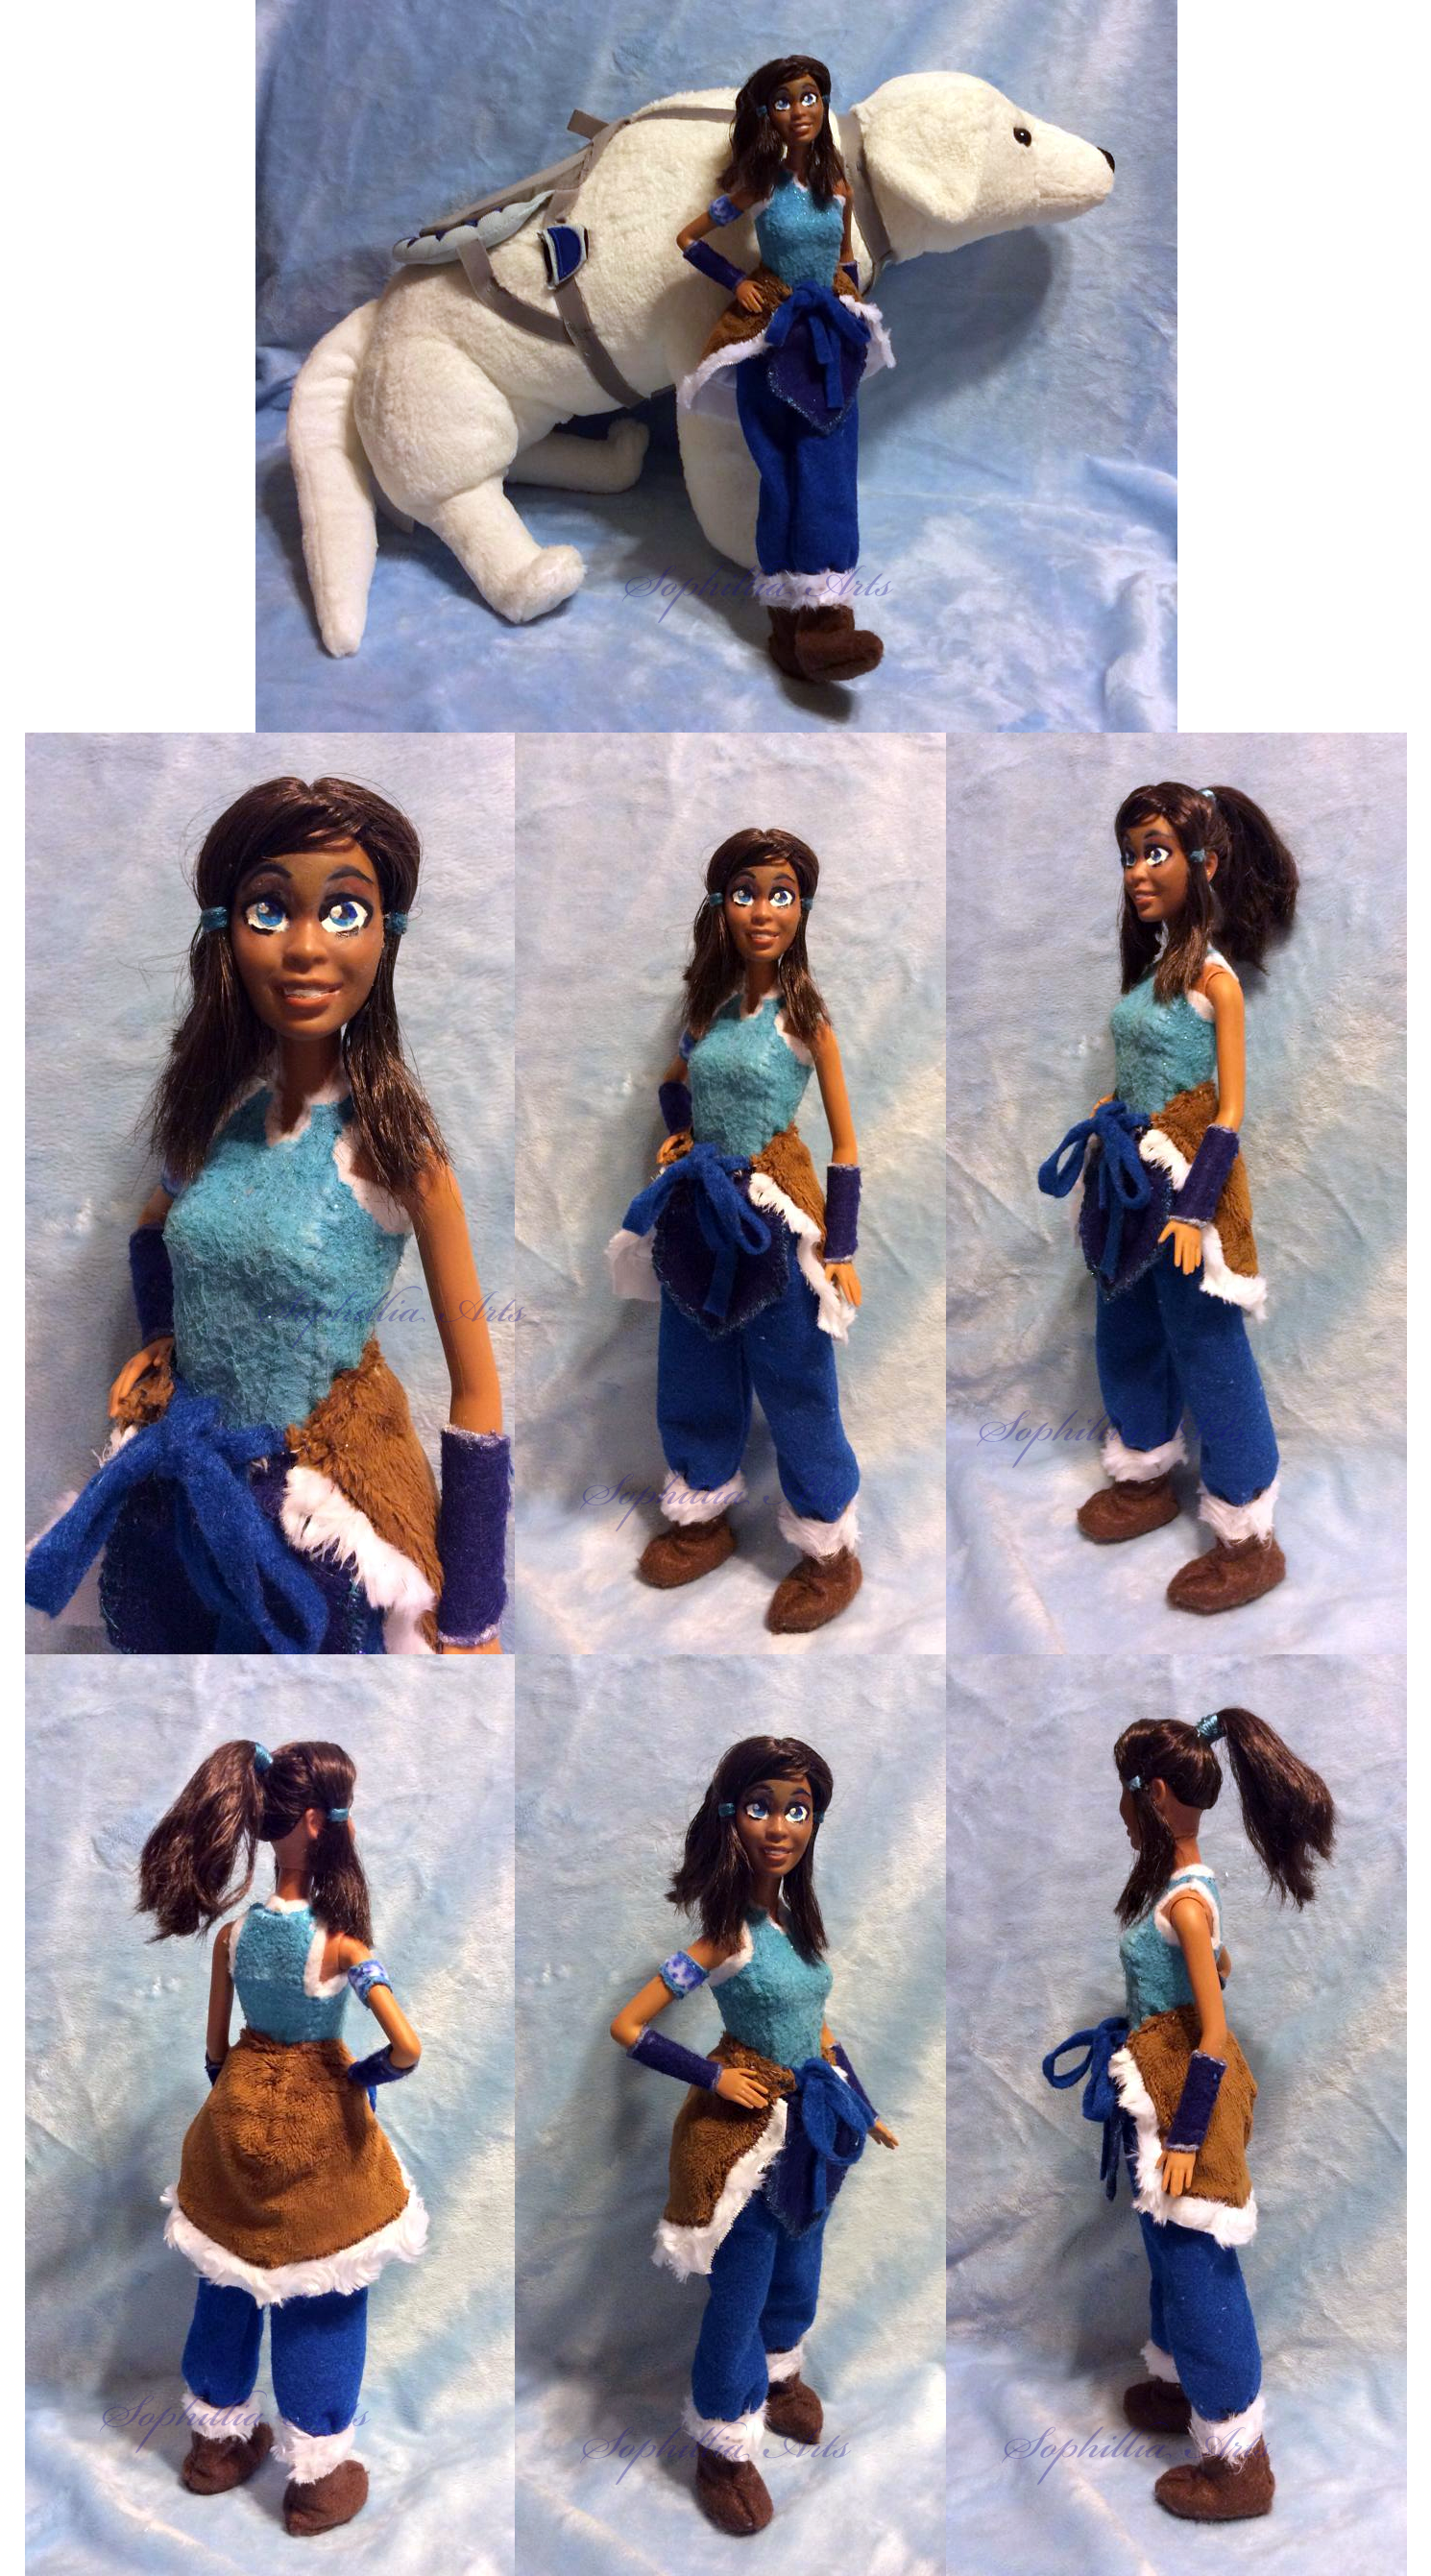 Legend Of Korra Toys : Legend of korra custom doll by sophillia on deviantart